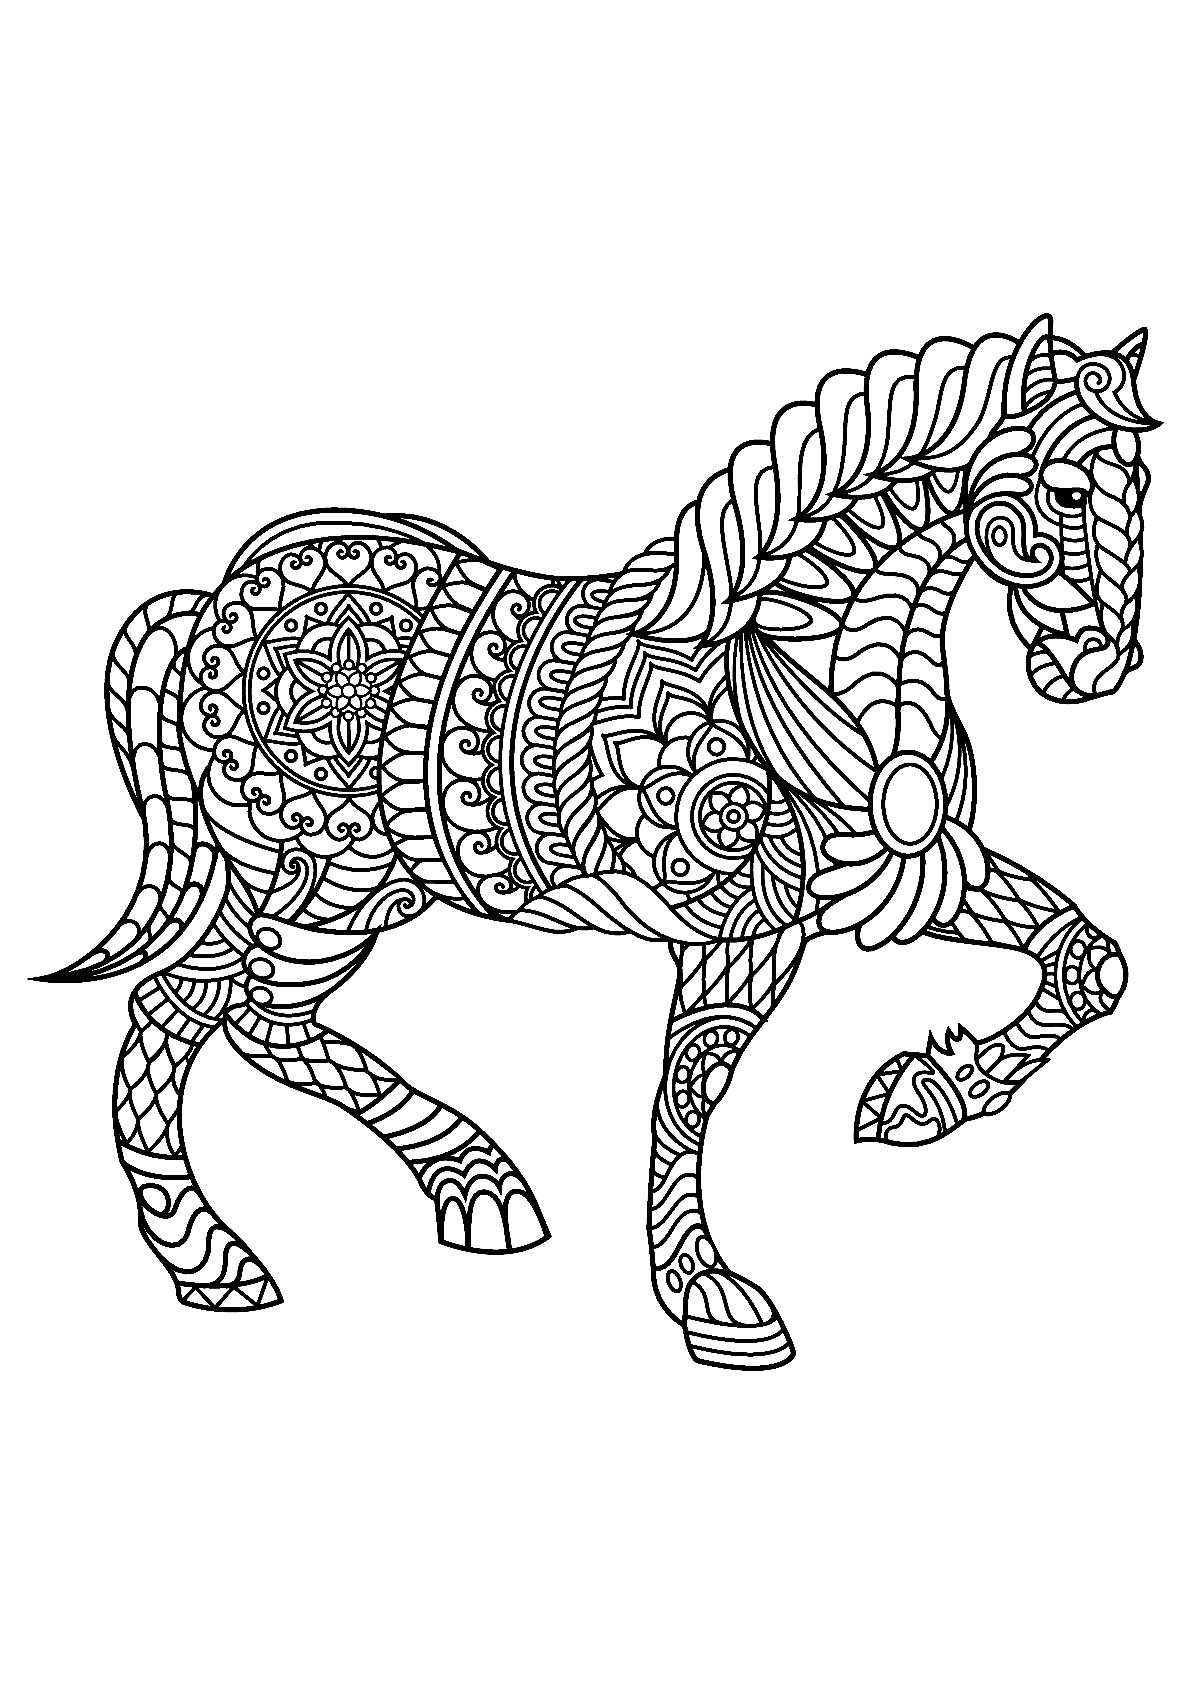 horse coloring sheets coloring pages horse coloring pages free and printable sheets coloring horse